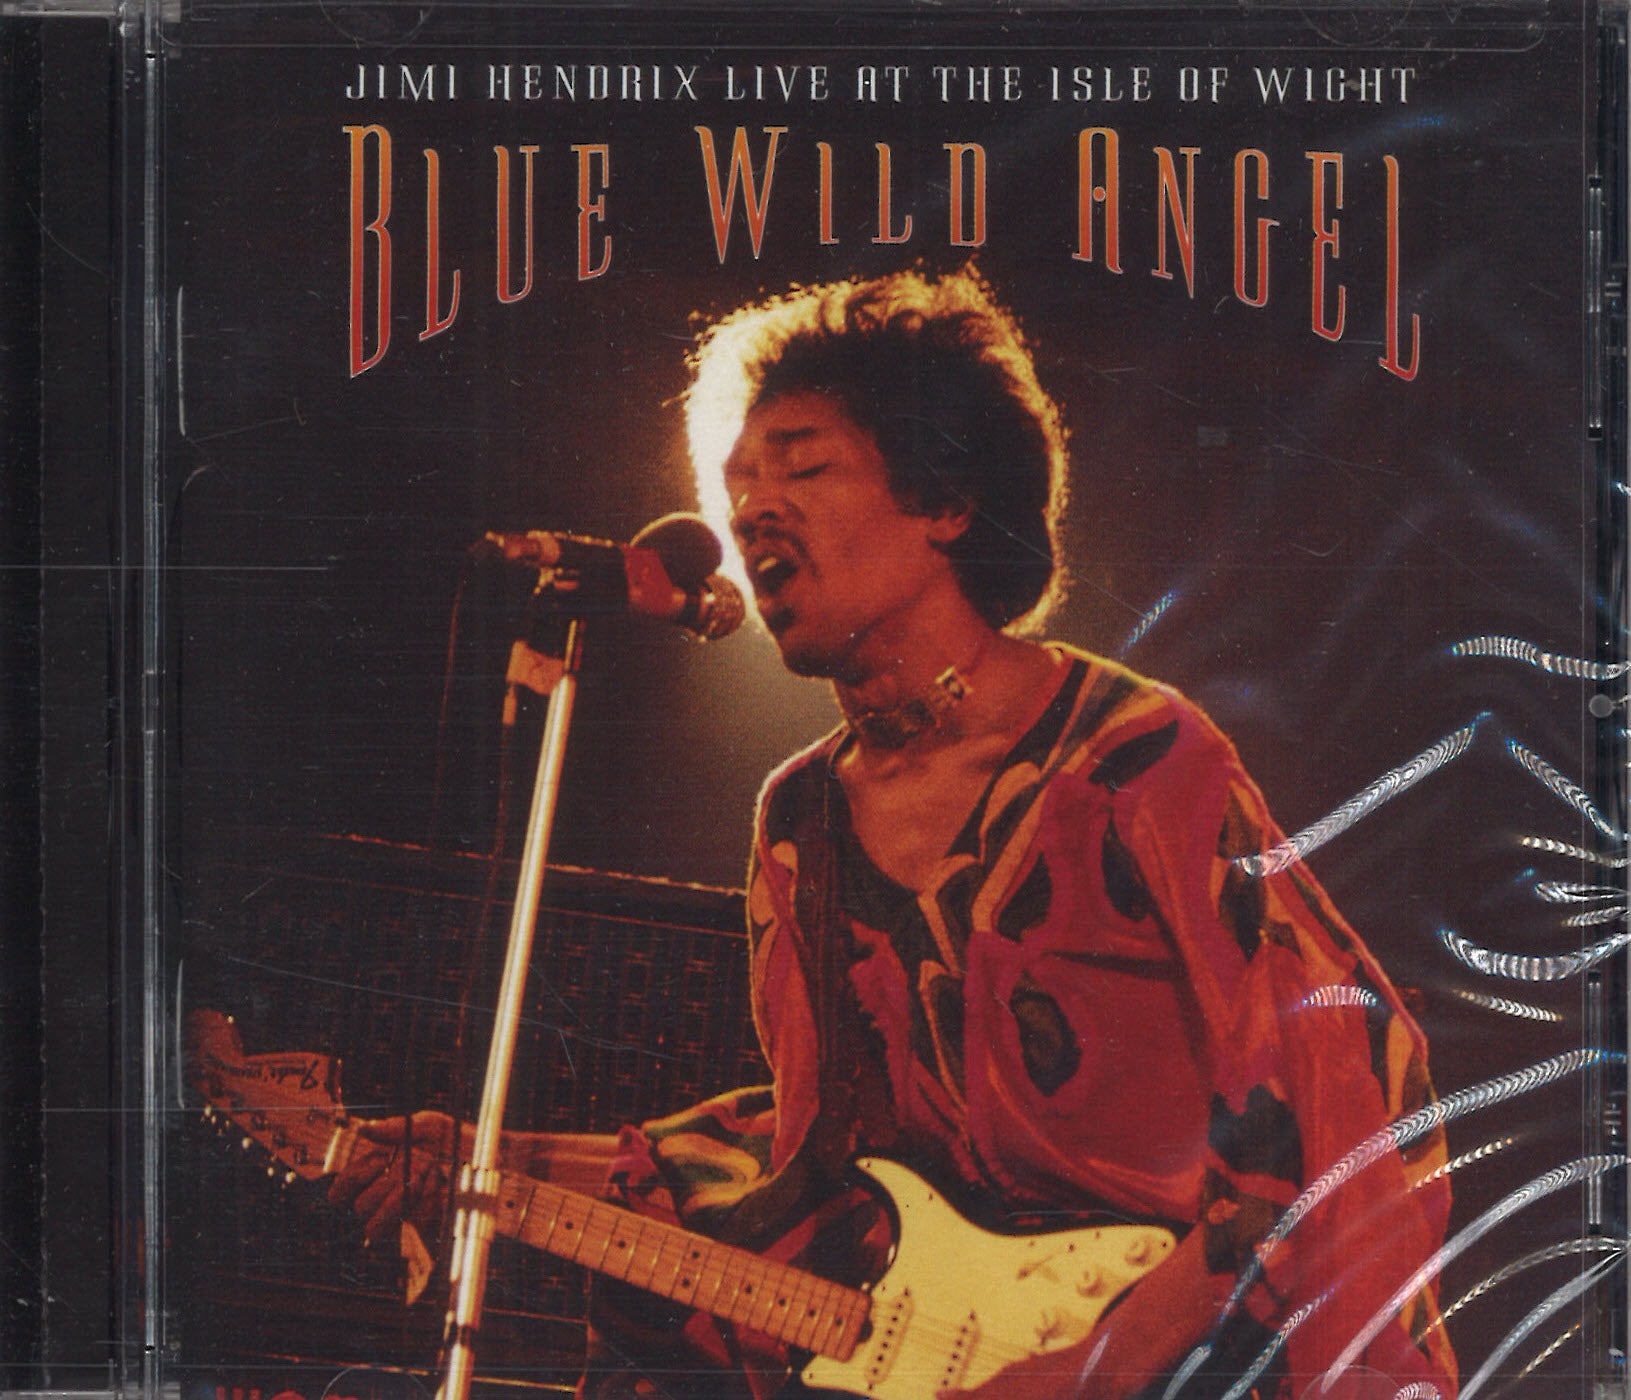 Jimi Hendrix Live At The Aisle of Wight - Blue Wild Angel